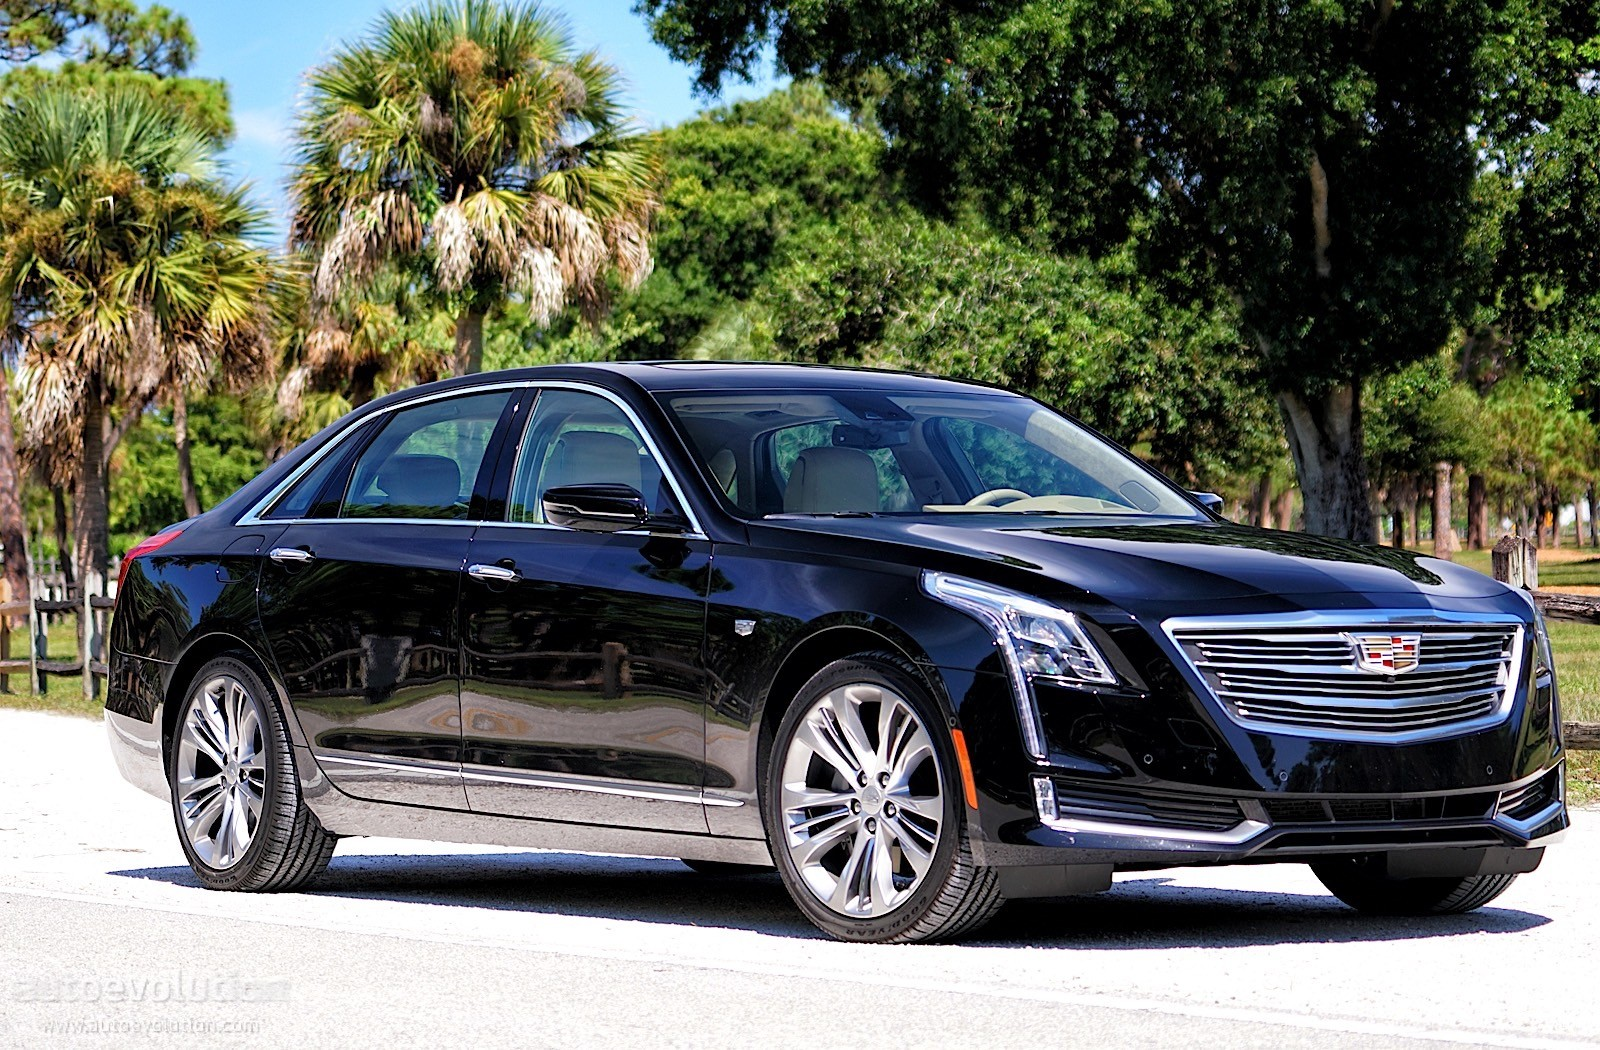 New Cadillac Ct6 Rendering Doesn T Do The Flagship Sedan